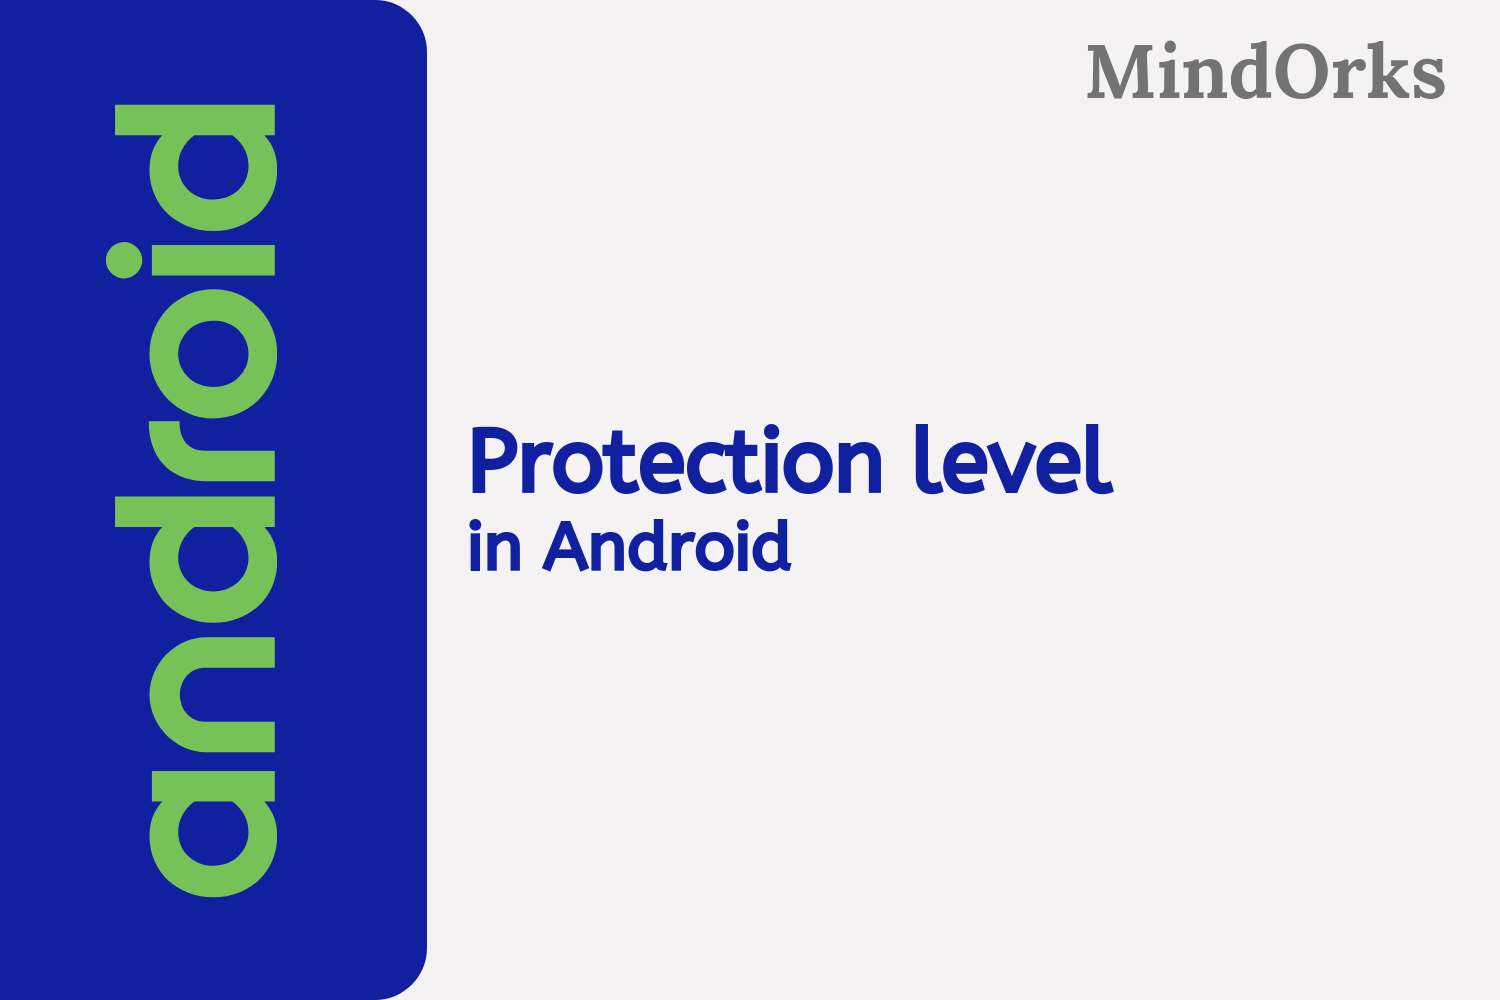 What are the different protection levels in Android Permission?